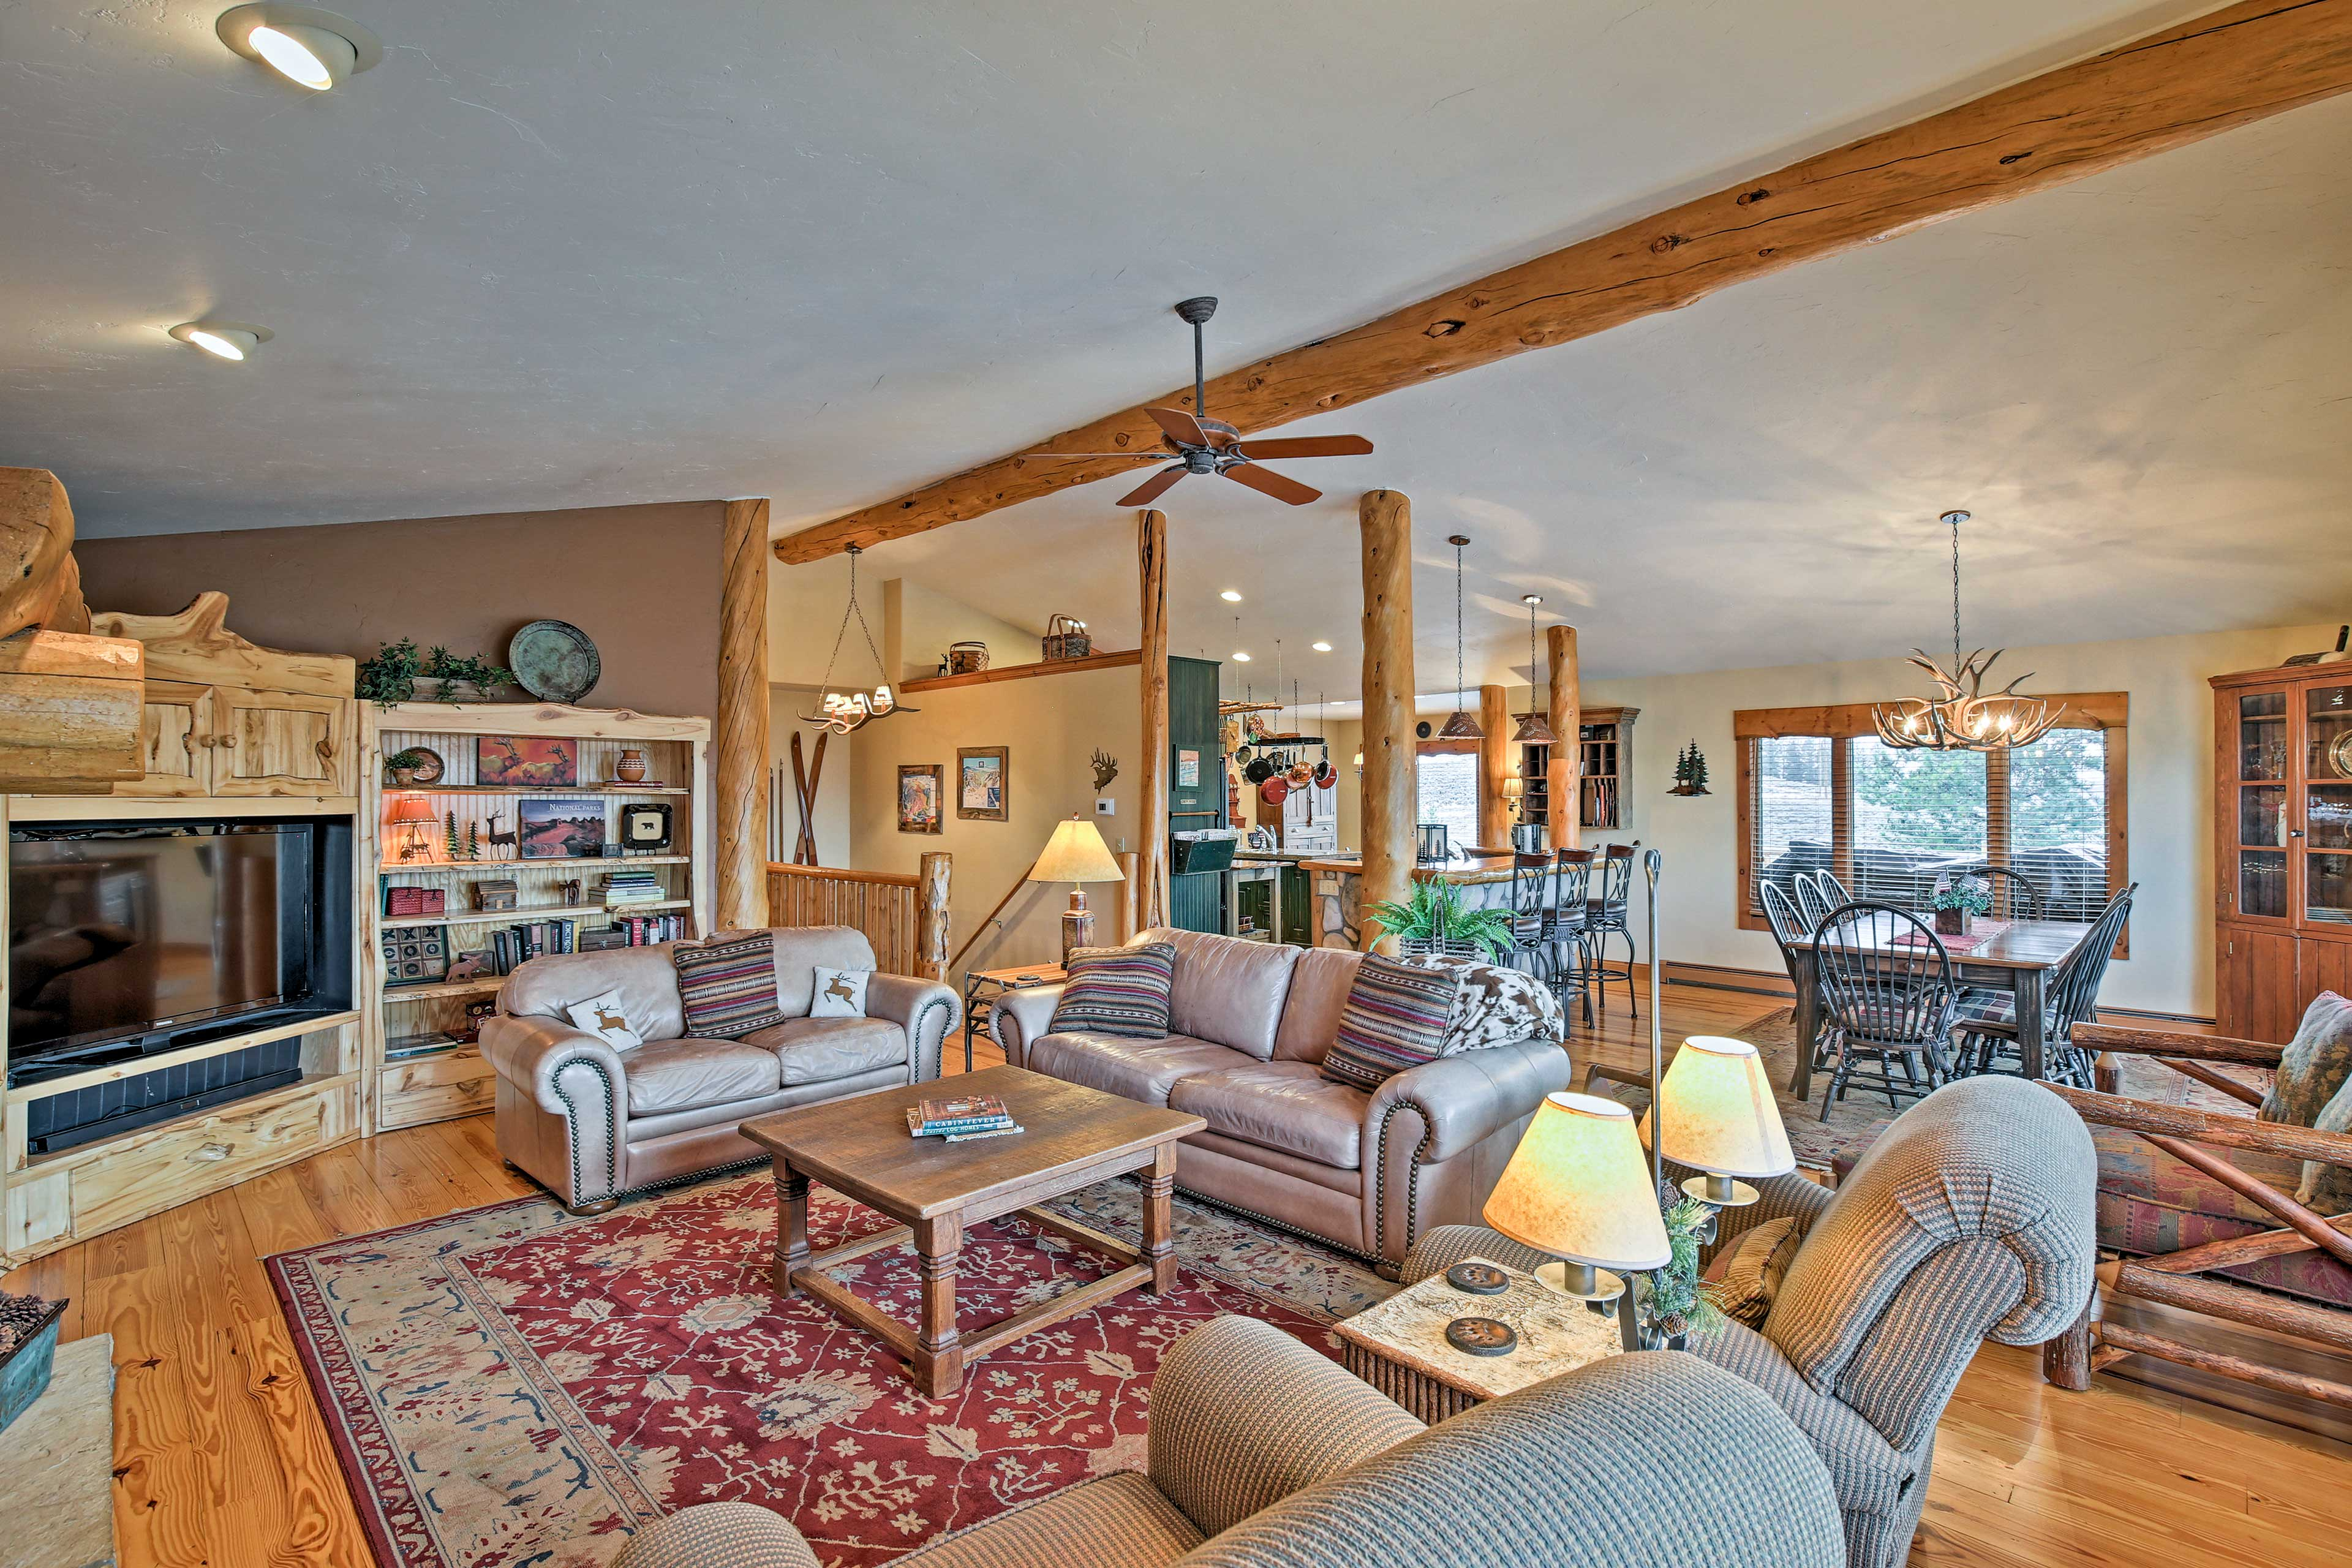 An open concept floor plan makes it easy to mingle with your loved ones.